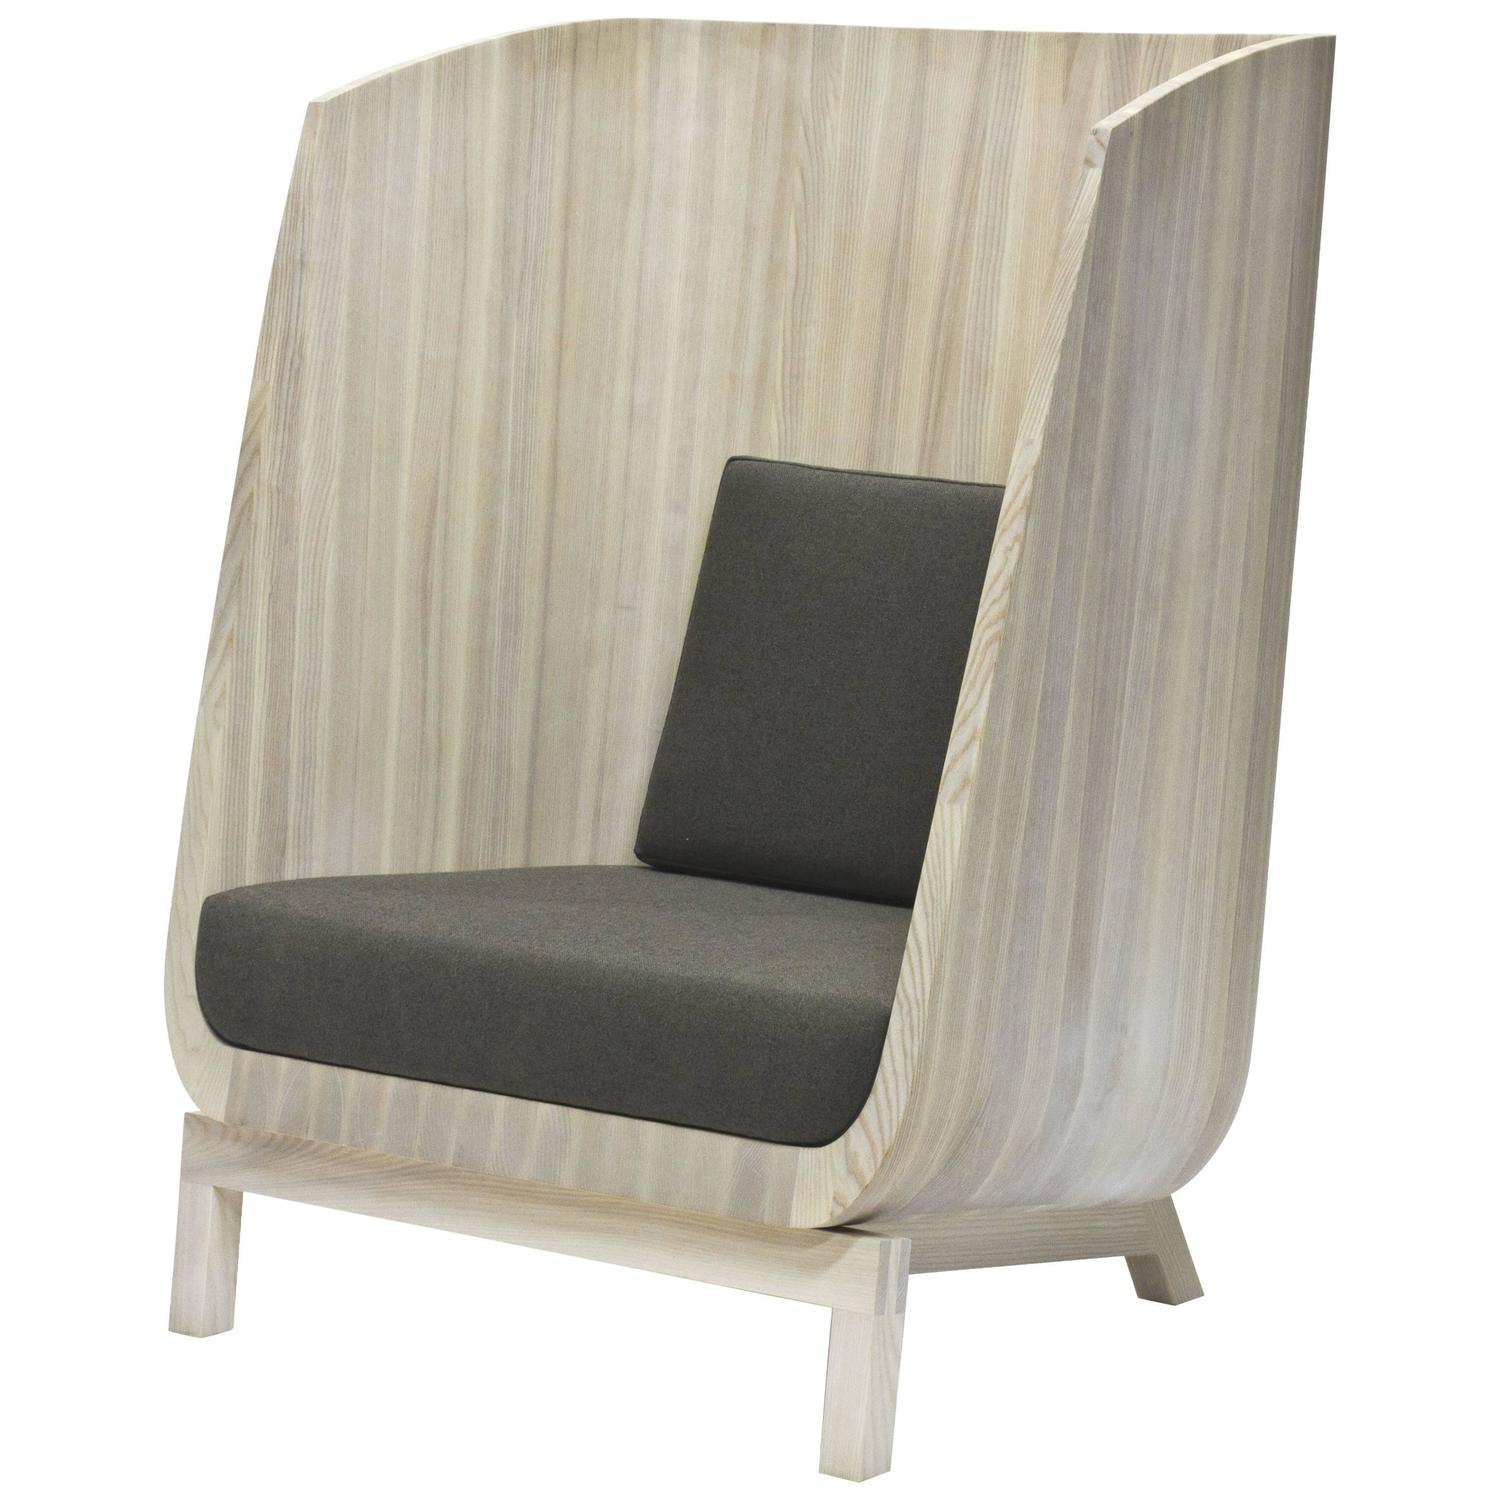 Superieur Husk Privacy Chair In Solid Ash By Laura Mays For Wooda